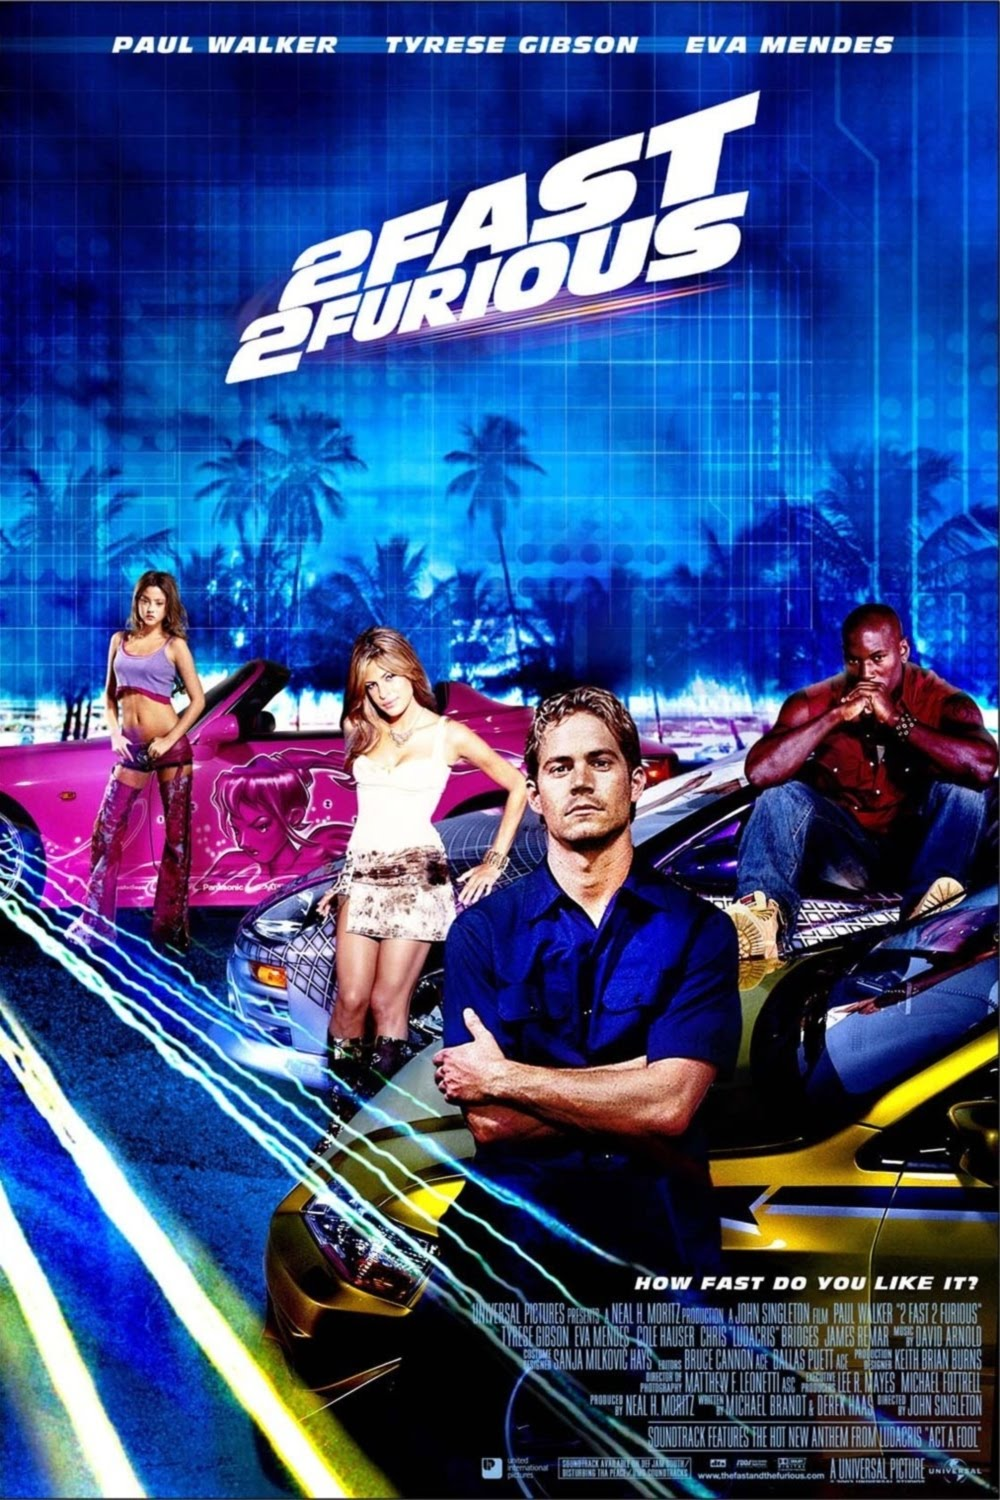 S And W >> The Movies Database: [Posters] 2 Fast 2 Furious (2003)